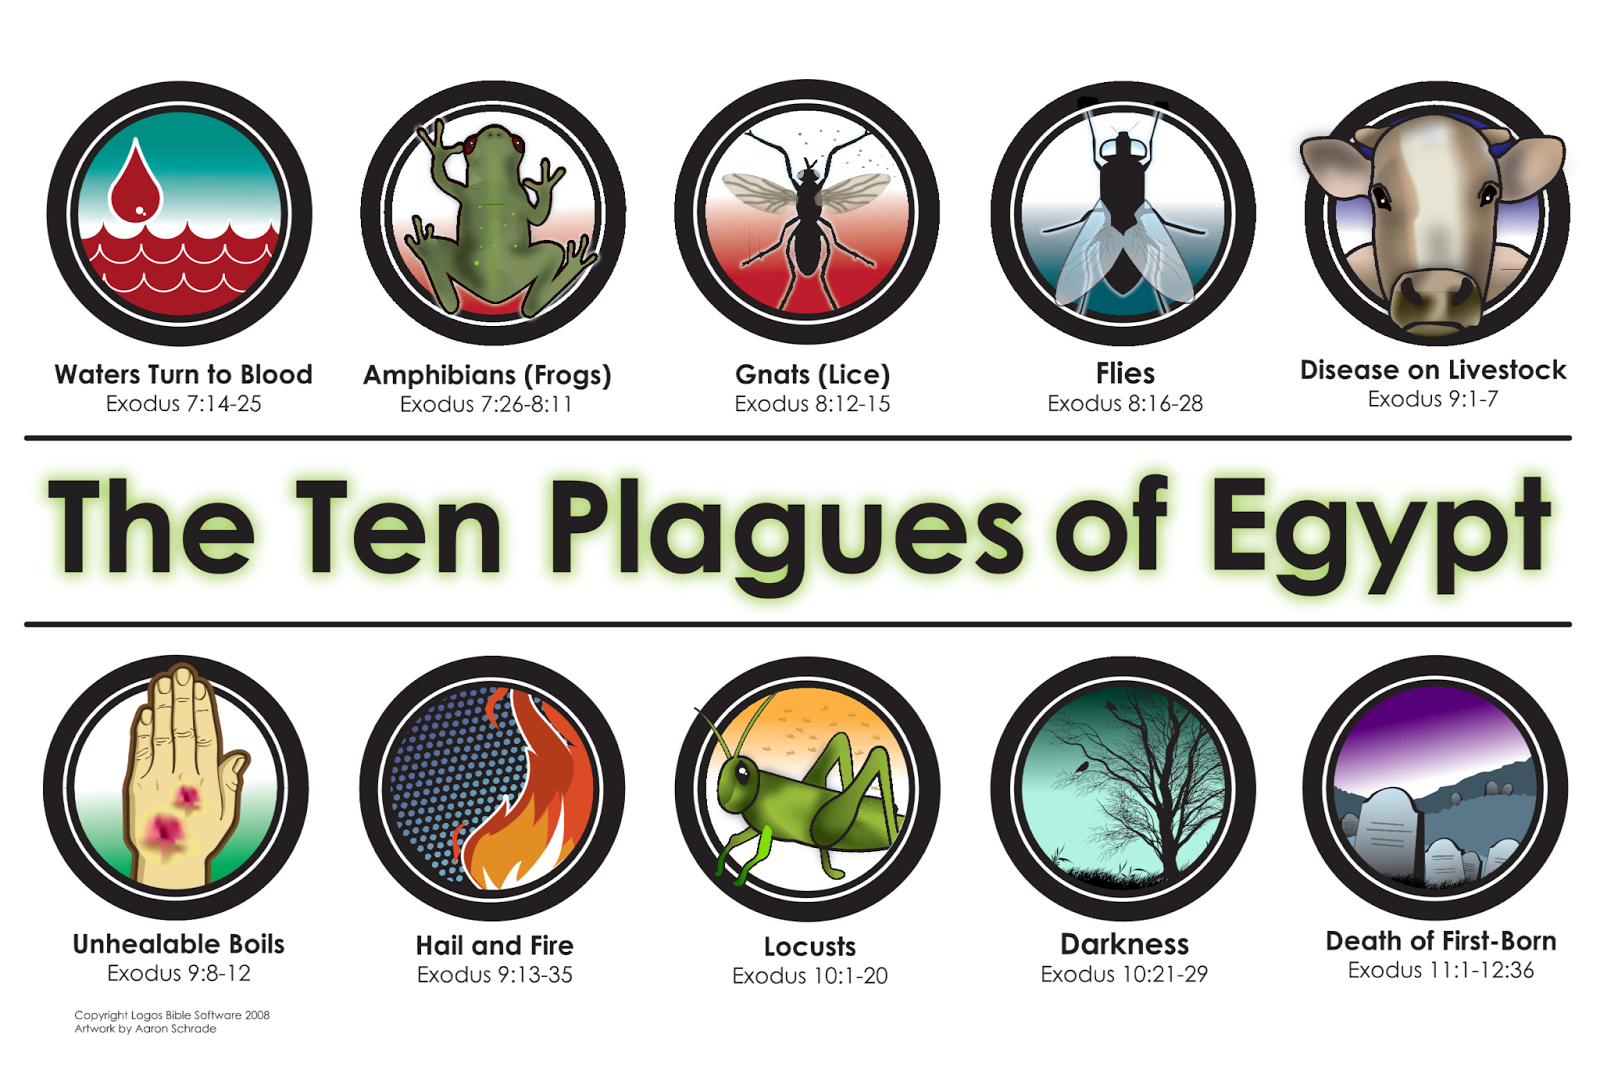 What are the 10 plagues of Egypt?